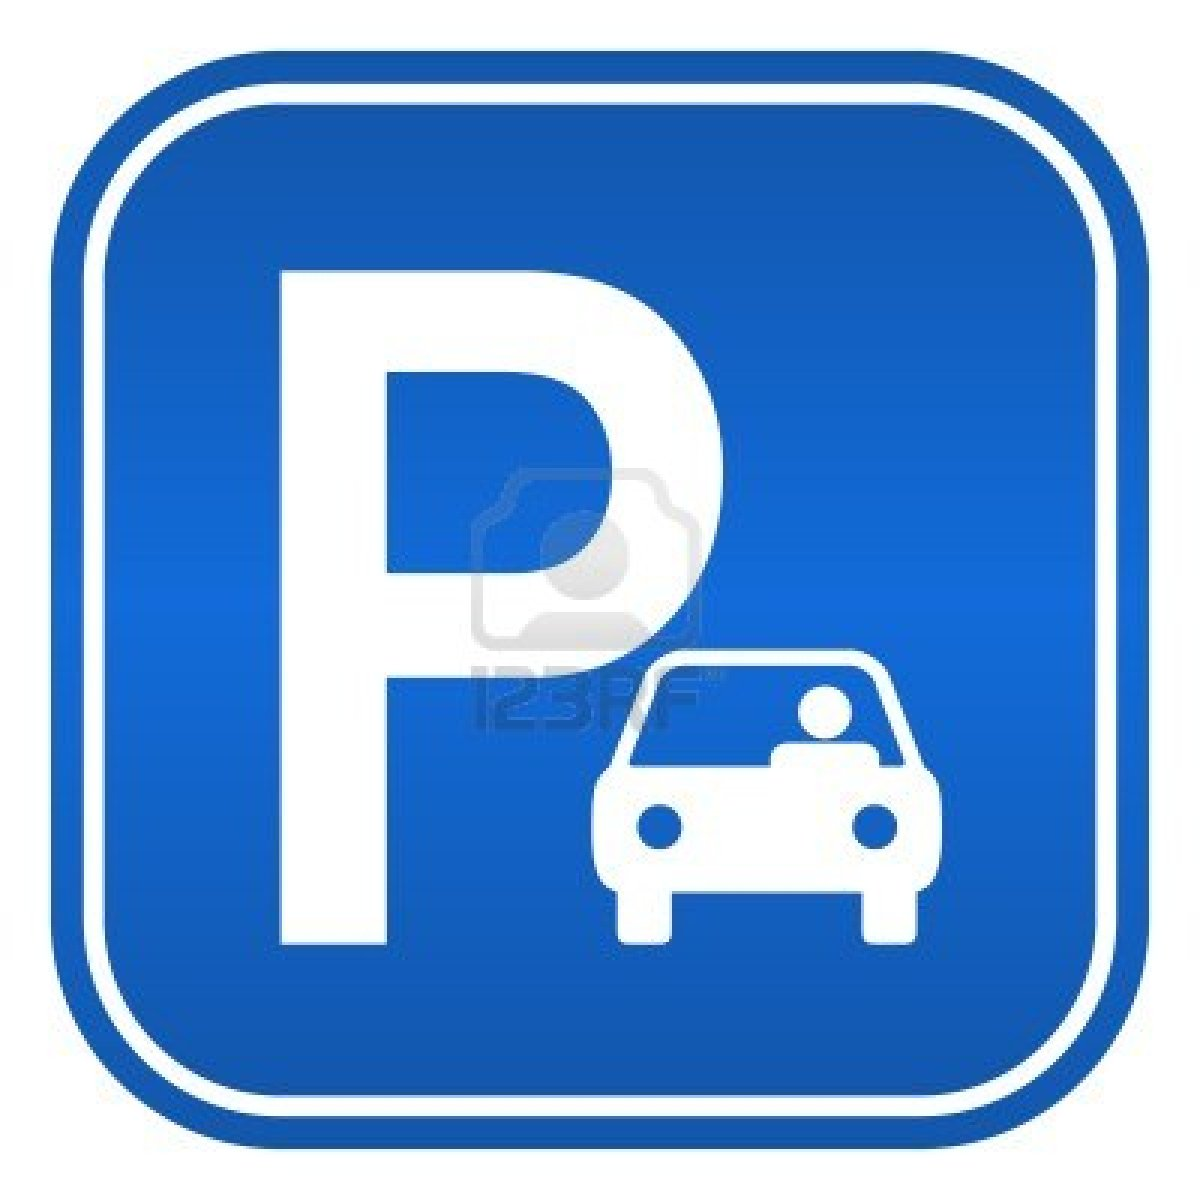 Free Parking Sign Cliparts, Download Free Clip Art, Free.